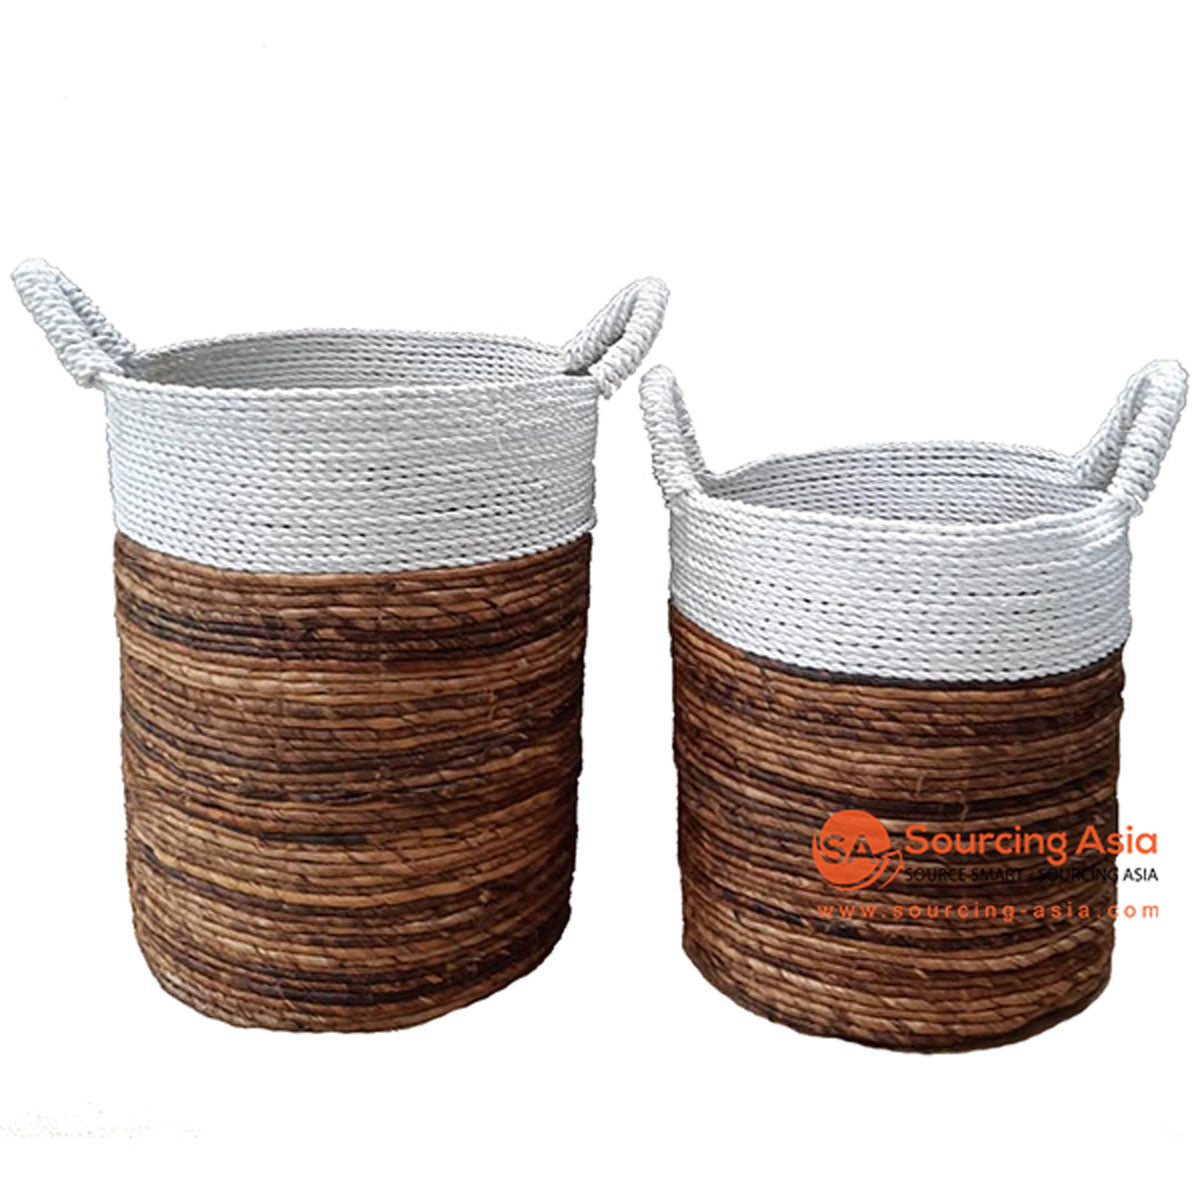 SHL057-14 SET OF TWO BANANA BASKETS WITH MACRAME DETAIL